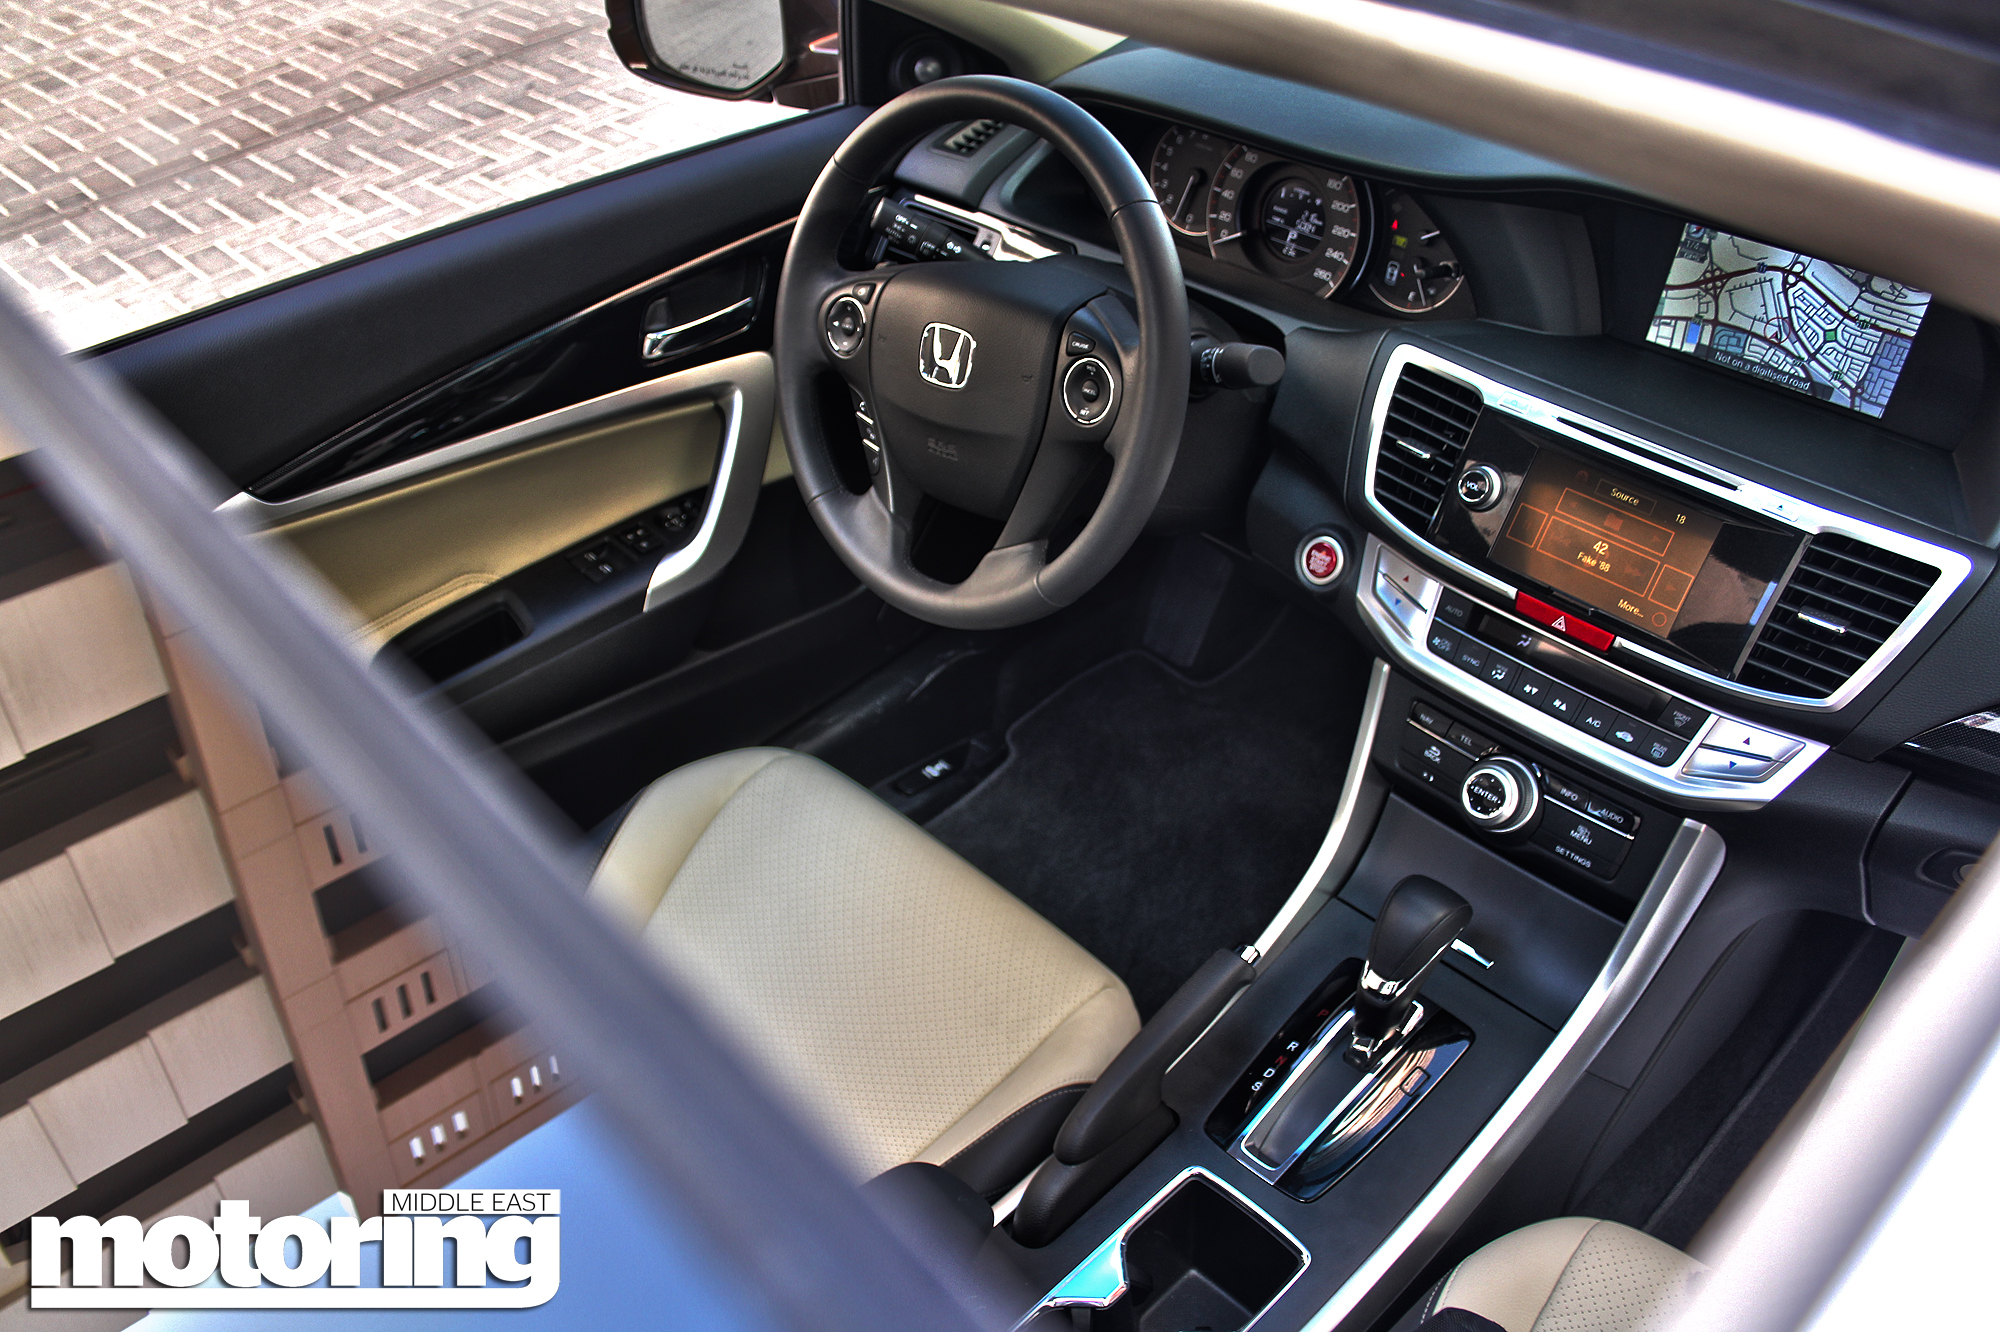 2013 Honda Accord Review Motoring Middle East Car News Reviews 2012 Coupe V6